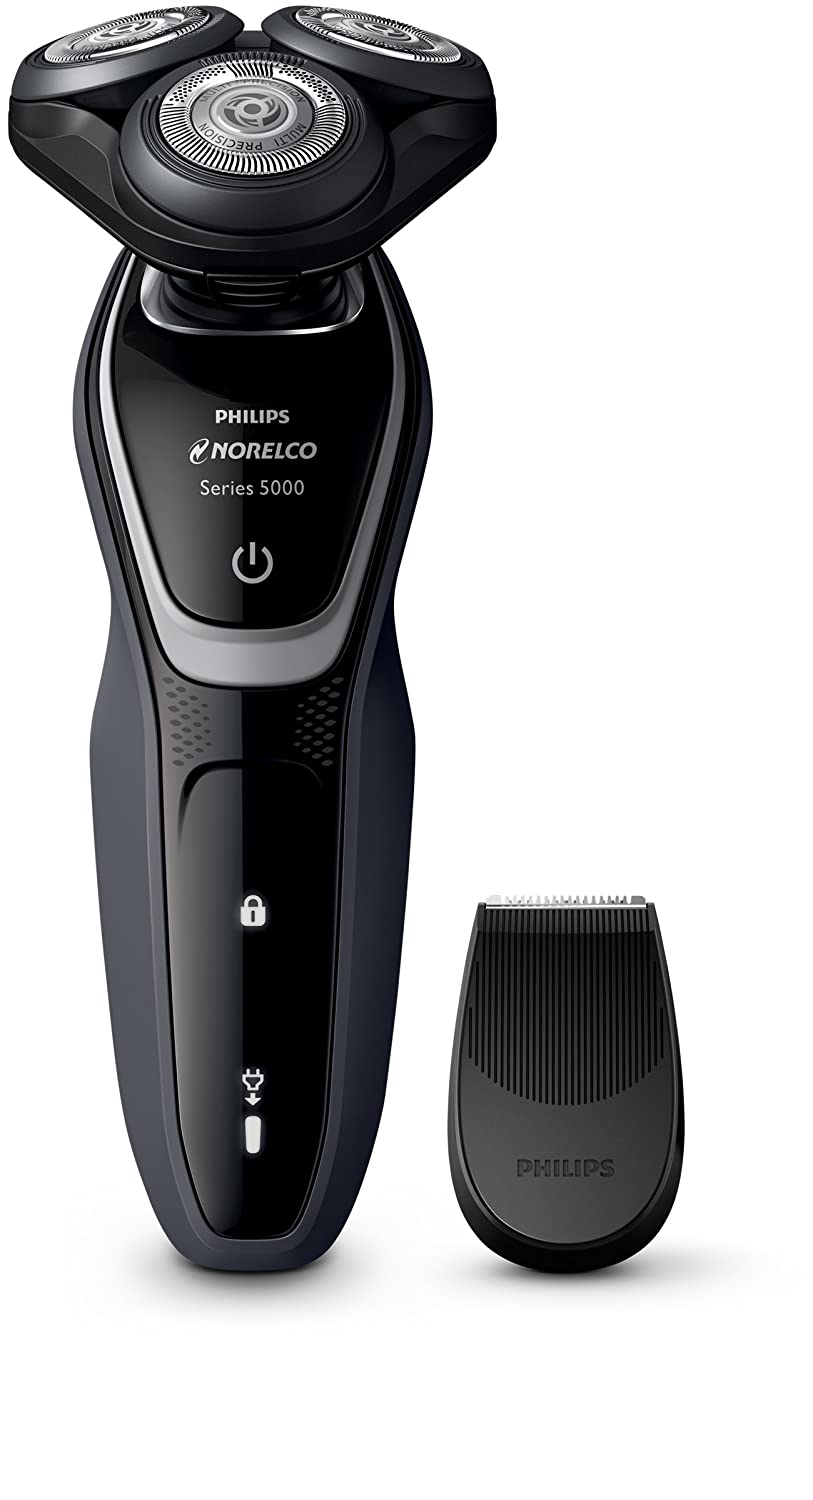 Philips Norelco Electric Shaver 5100 Wet & Dry, S5210/86, Frustration Free Packaging